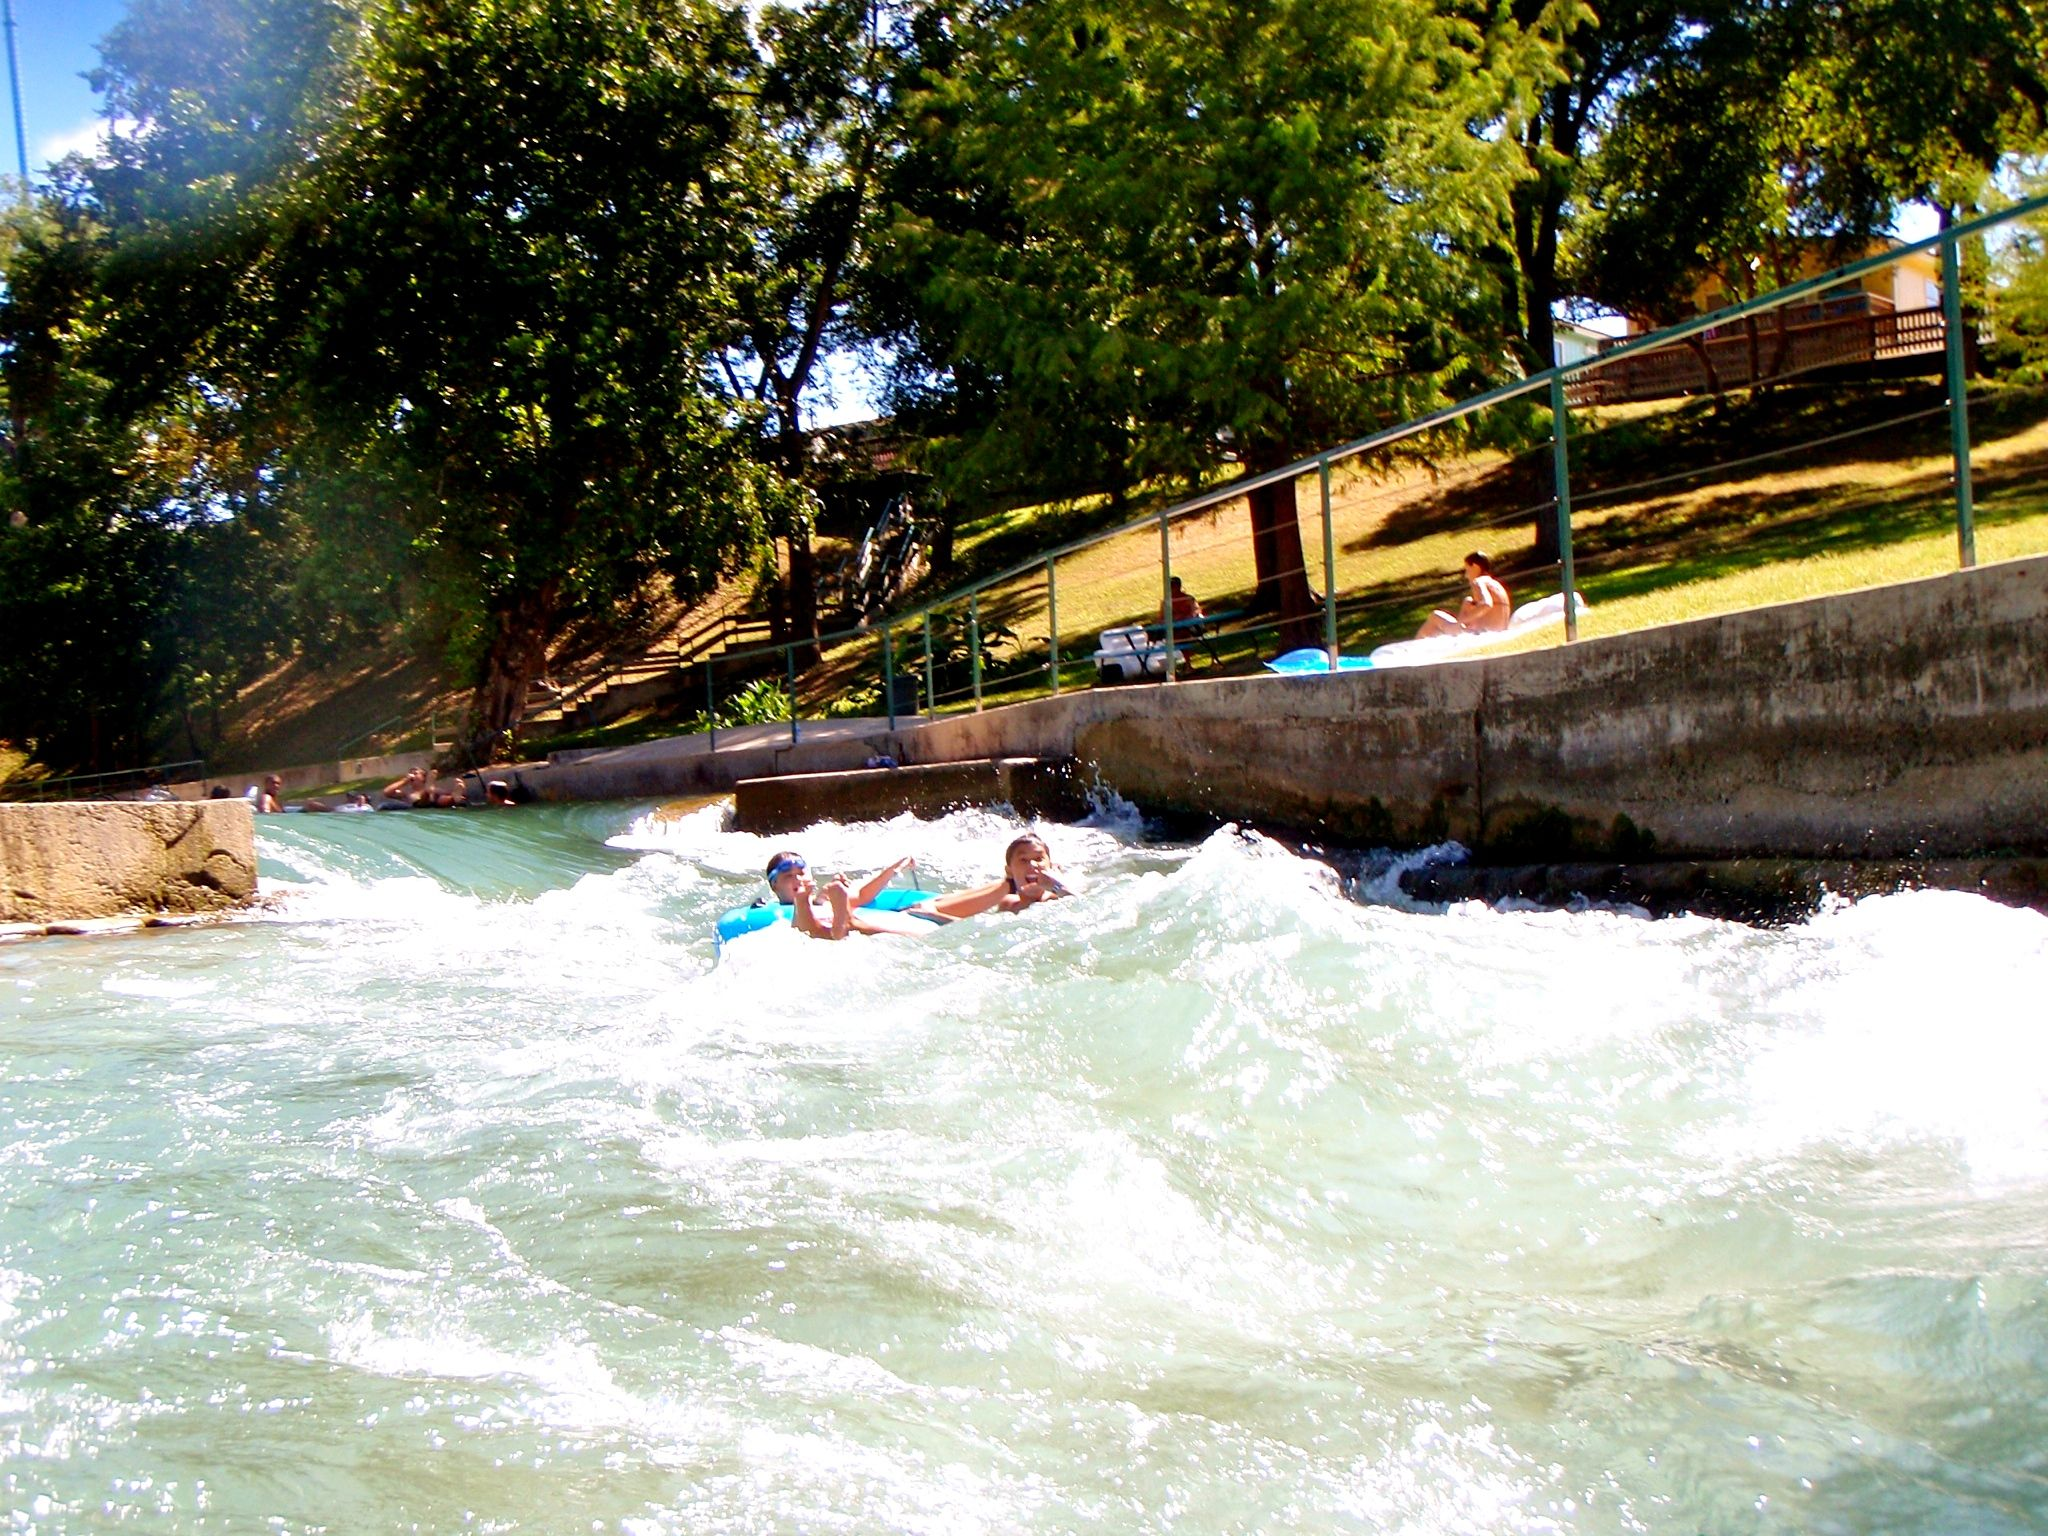 New braunfels river tubing / Columbus in usa